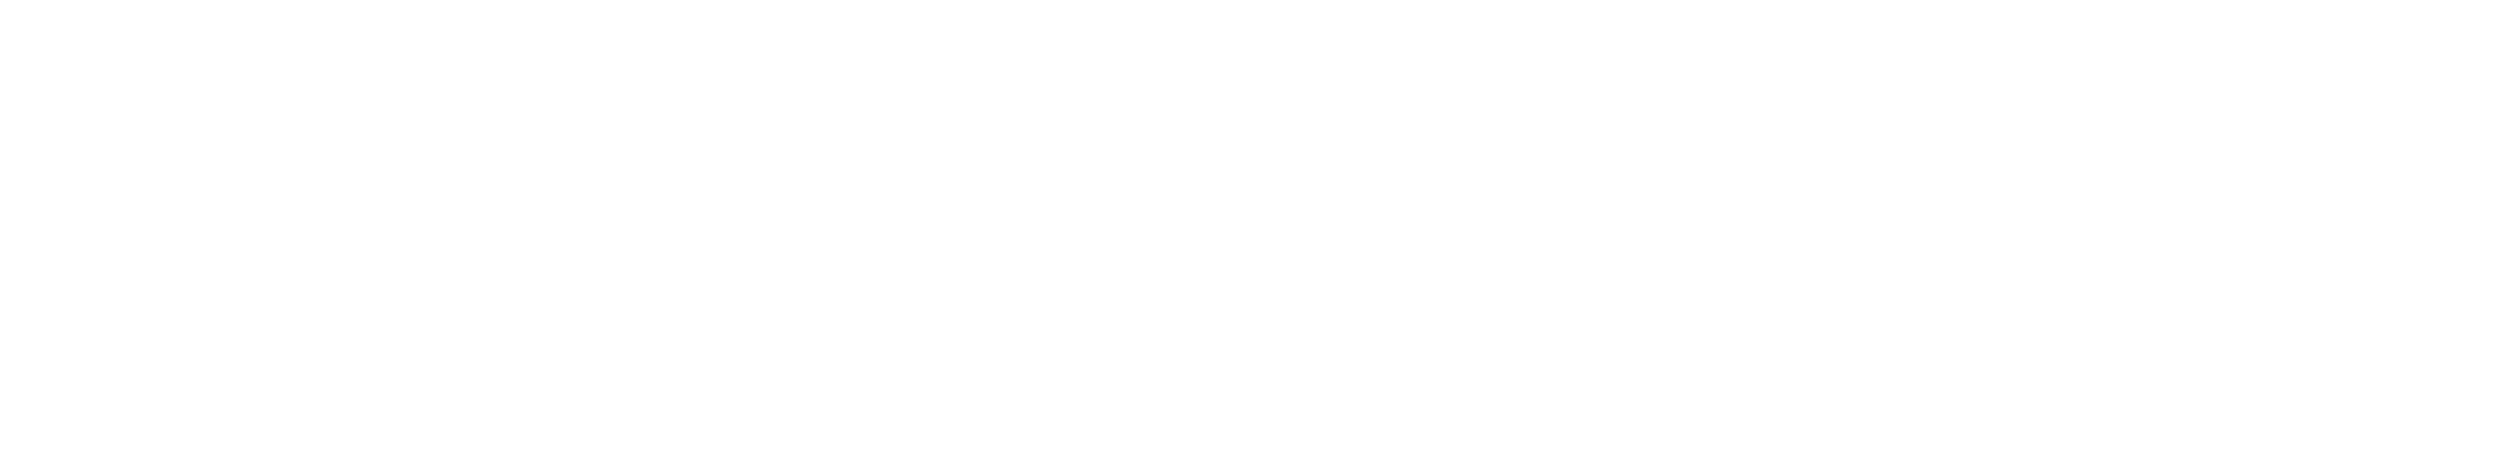 film-title-type.png